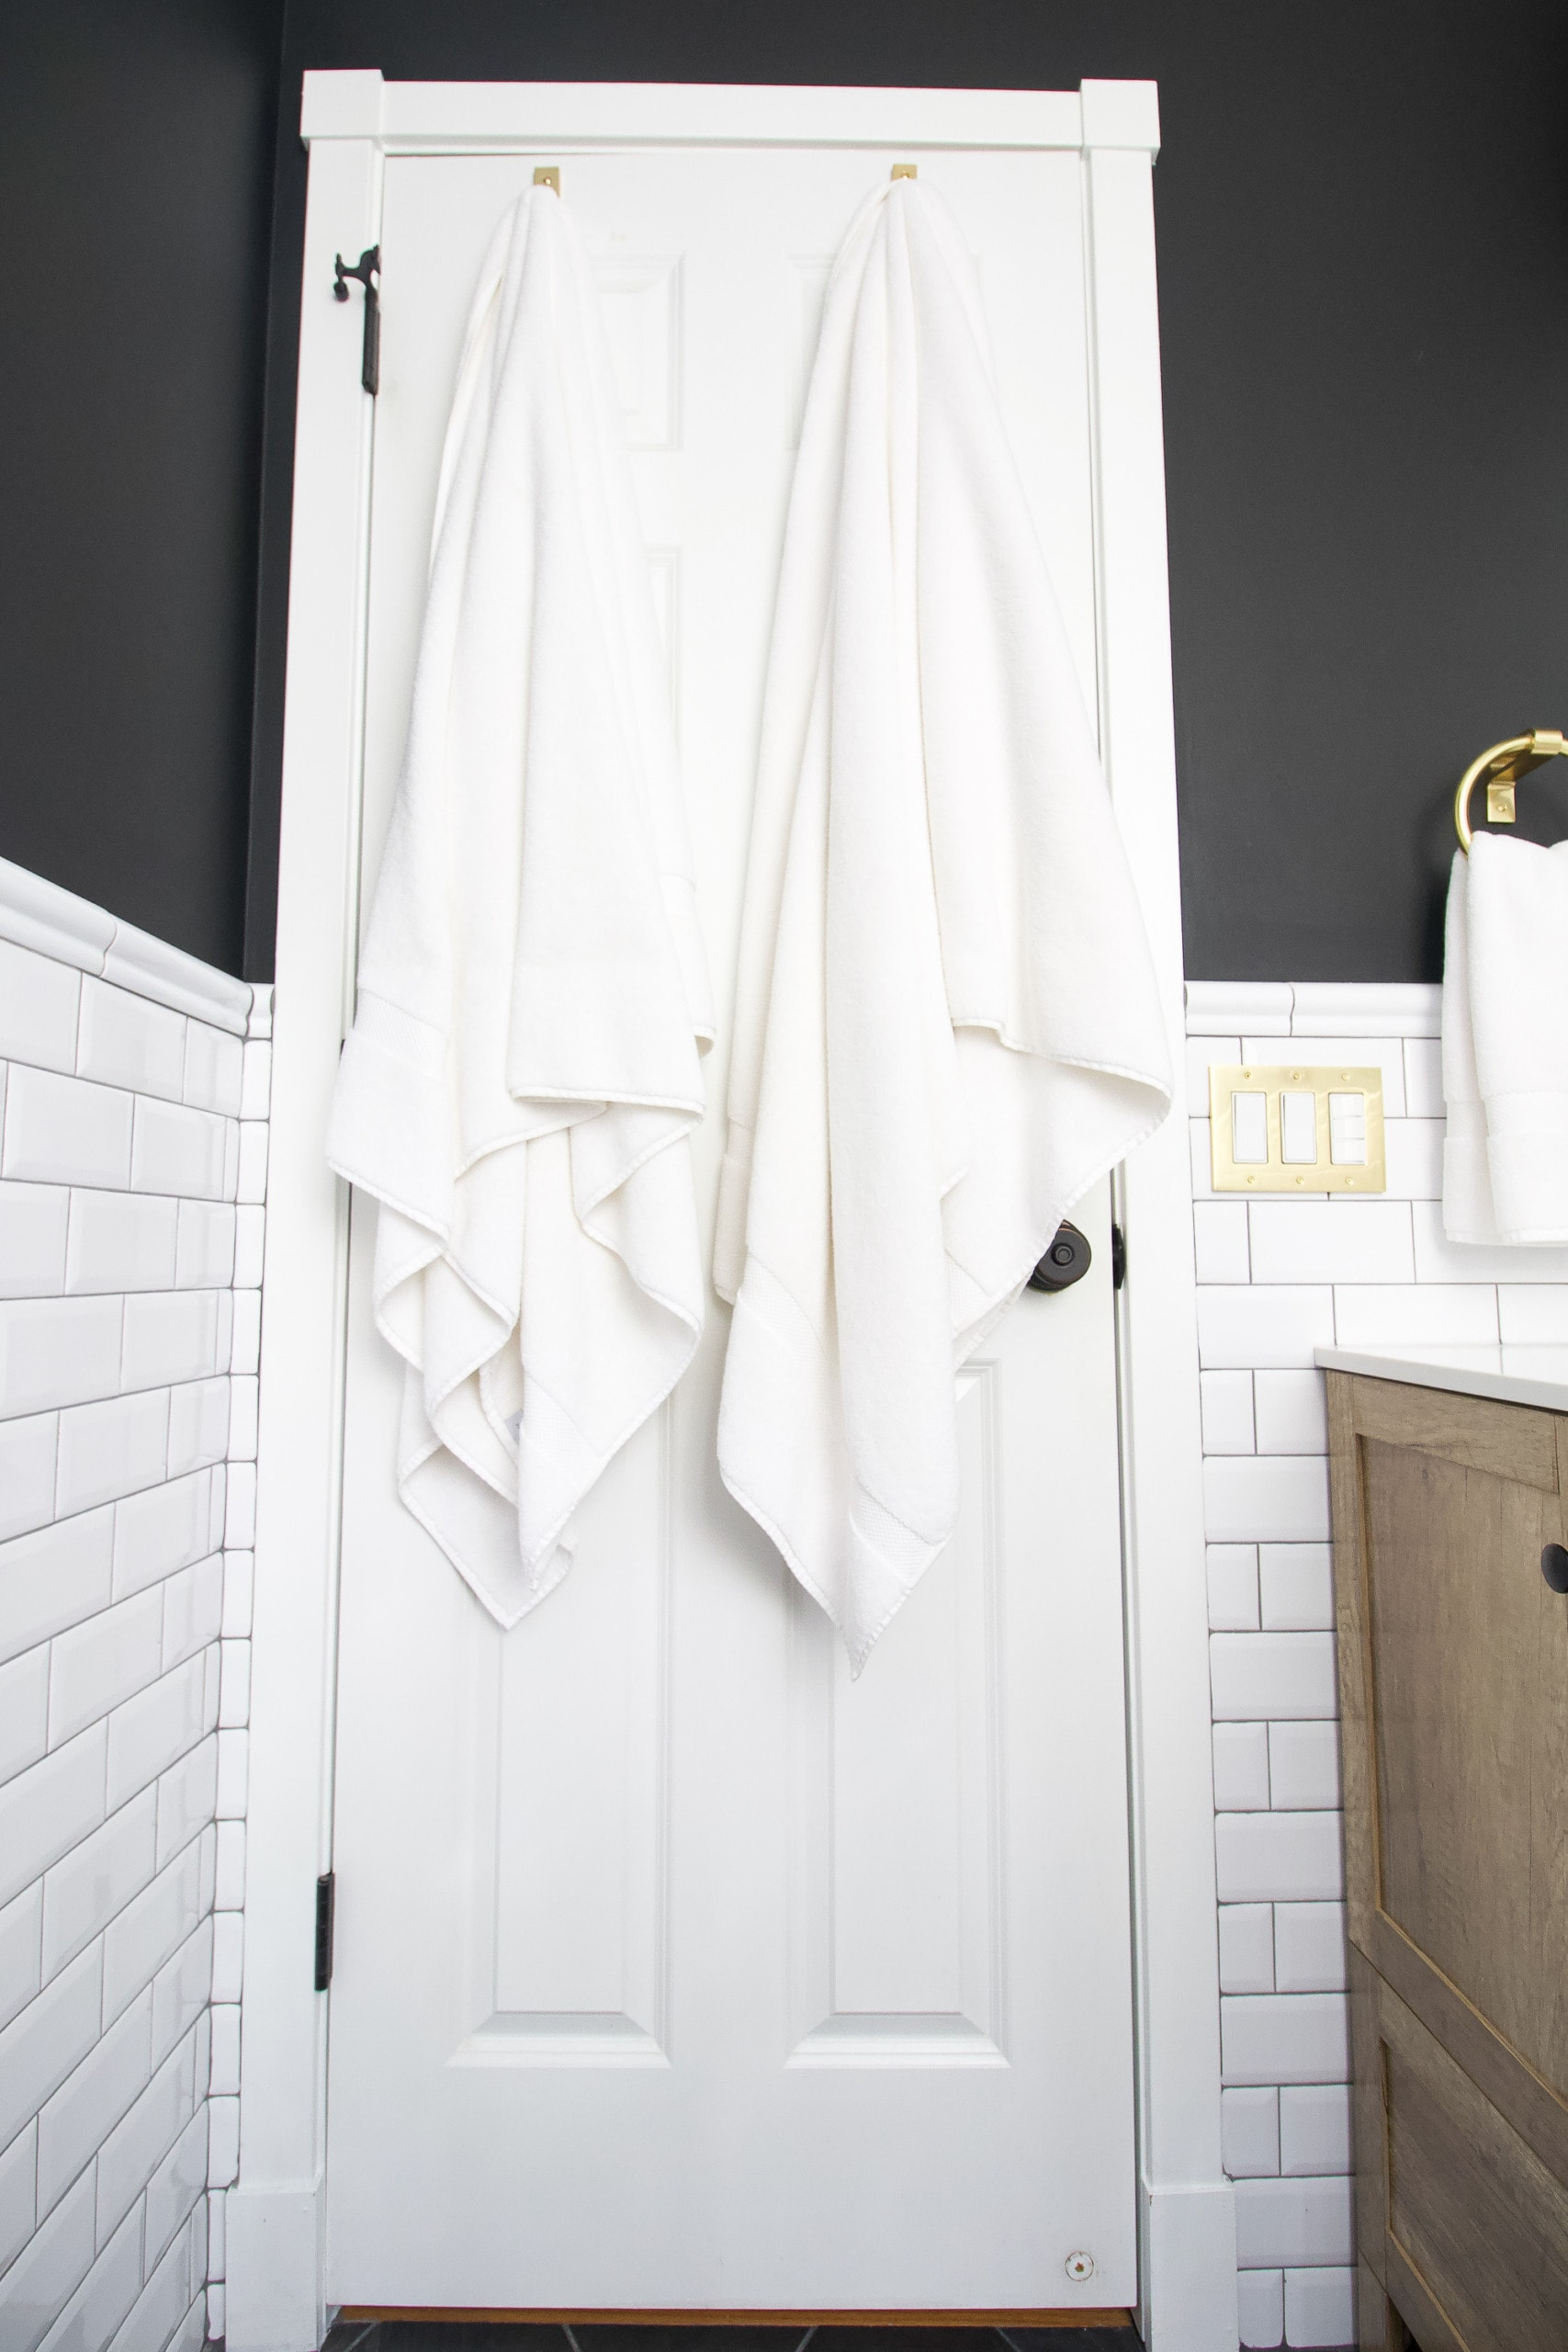 Adding lots of black and white to a bathroom space